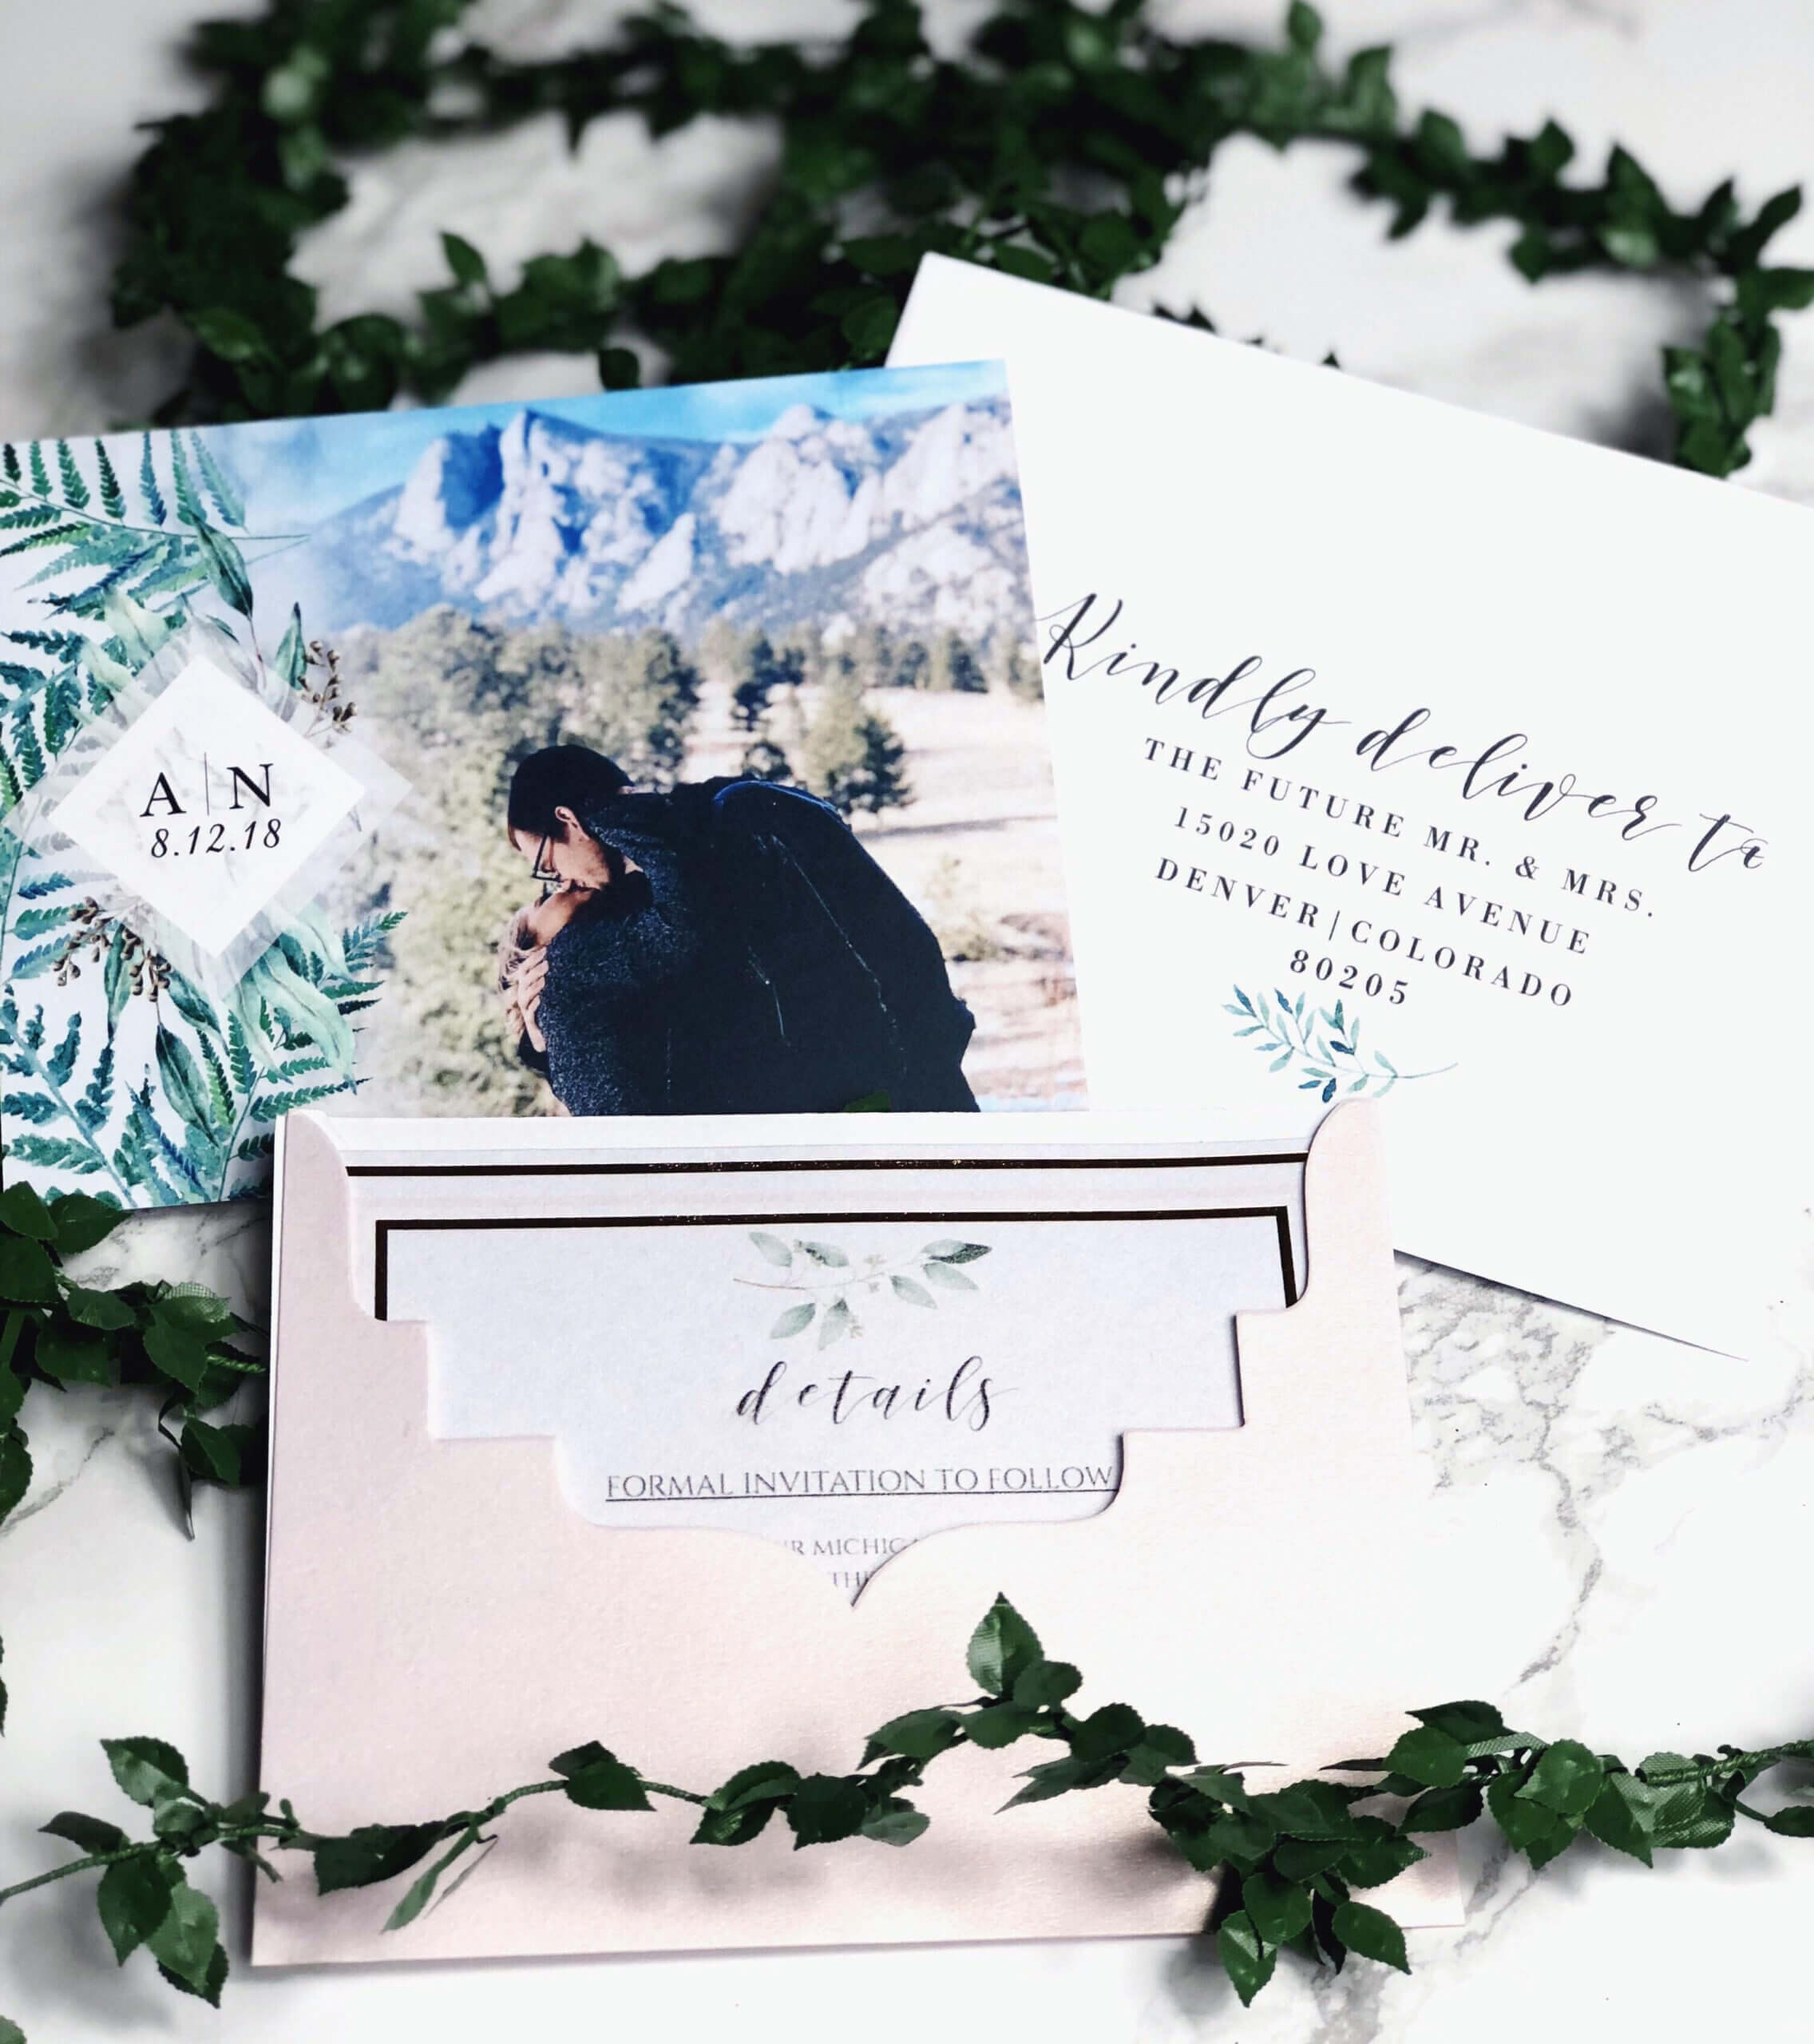 Our Save The Dates! Photo From Vistaprint, Envelope Intended For Michaels Place Card Template